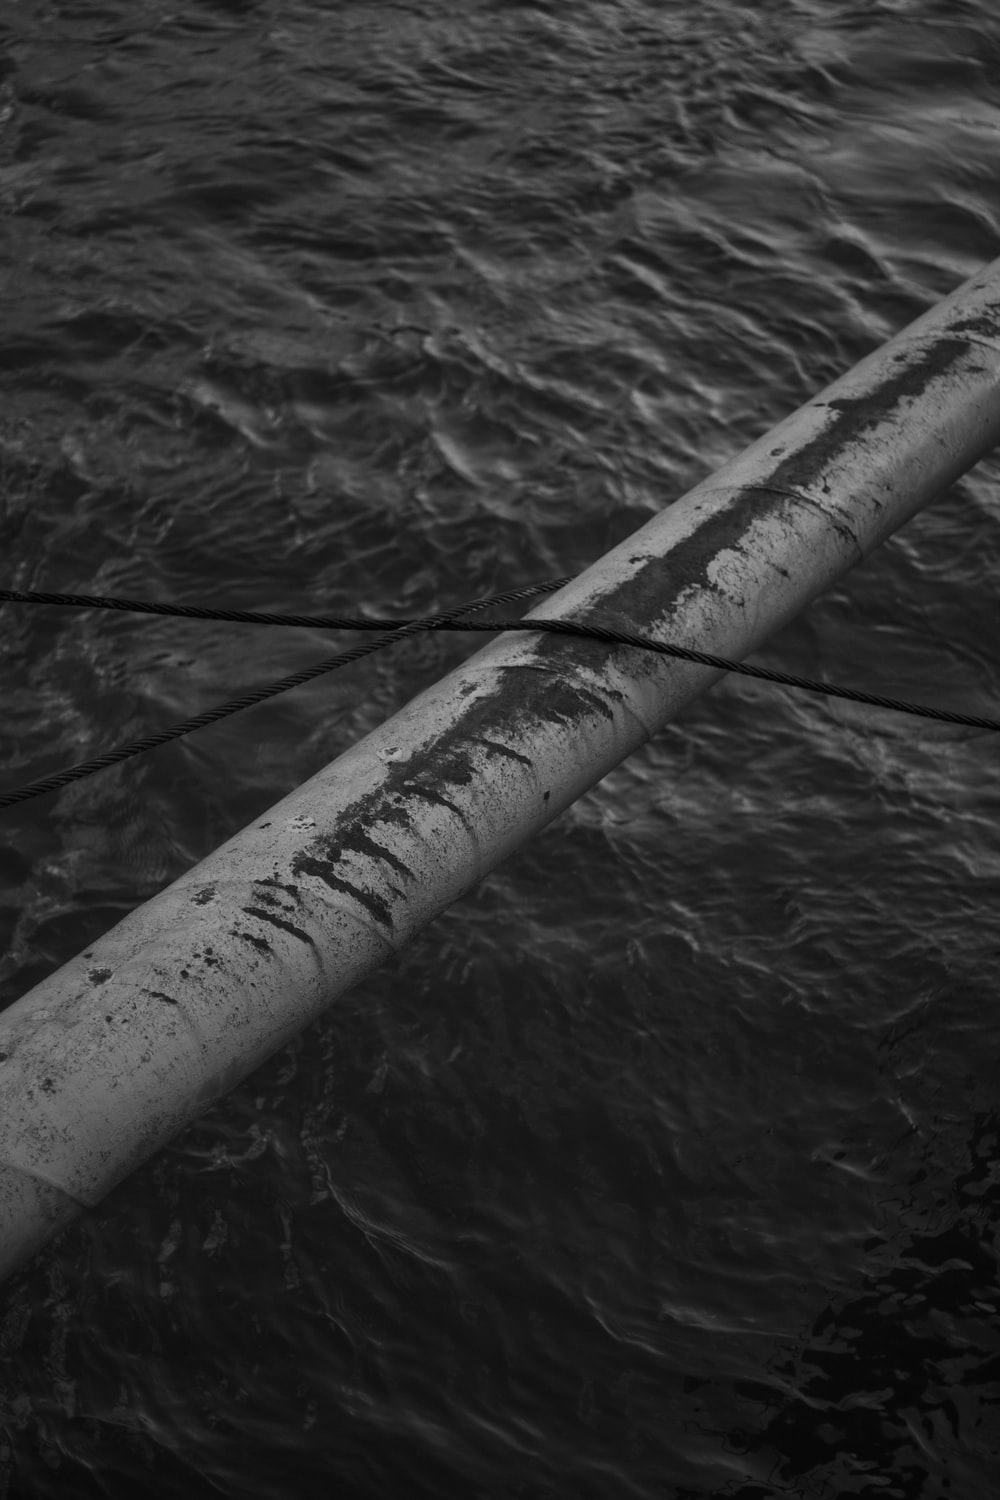 gray scale photo of a wooden stick